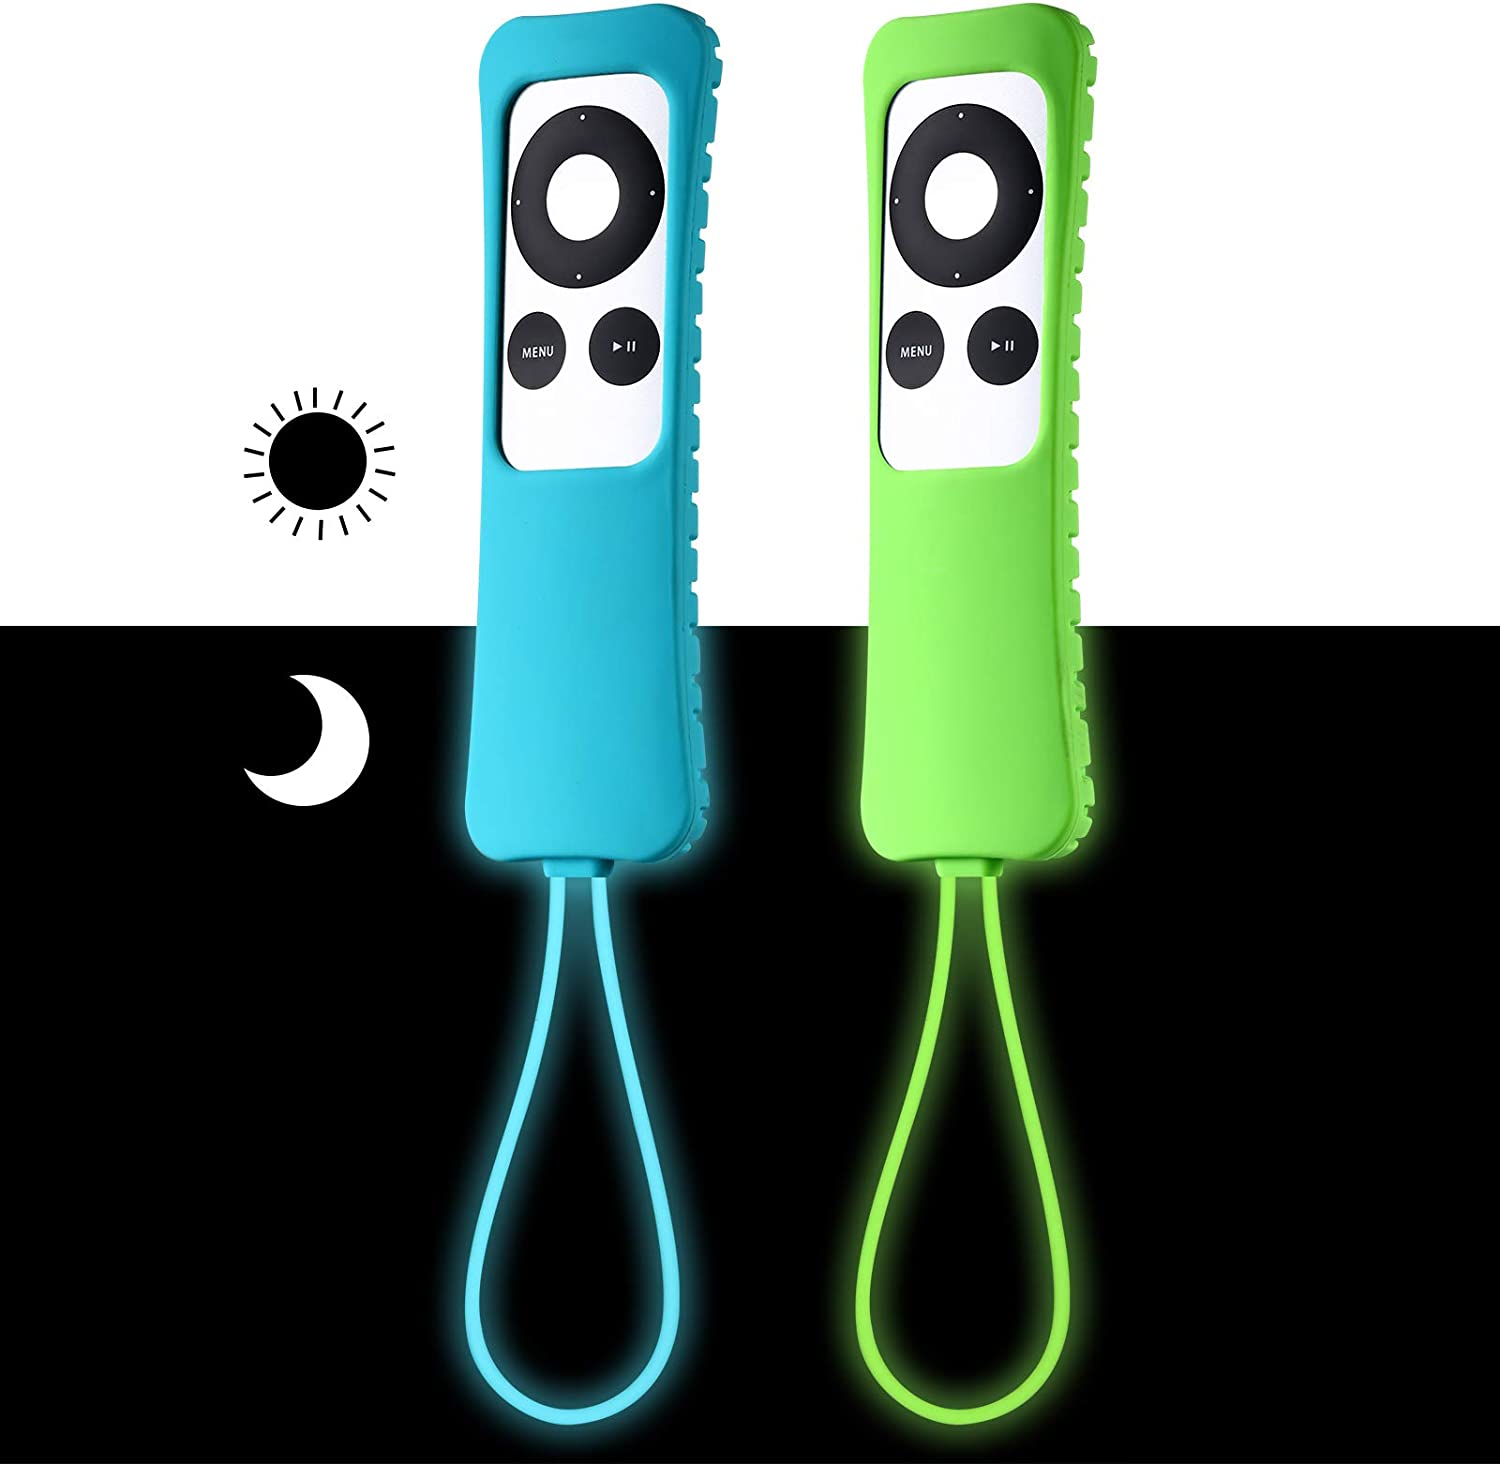 [2 Pack] ZYF Case for Apple TV 2 3 Remote, Anti-Drop, Anti-Lost Silicone Protective Cover for Apple TV 2nd Gen / 3rd Gen Remote Controller - Sky Blue Glow & Green Glow